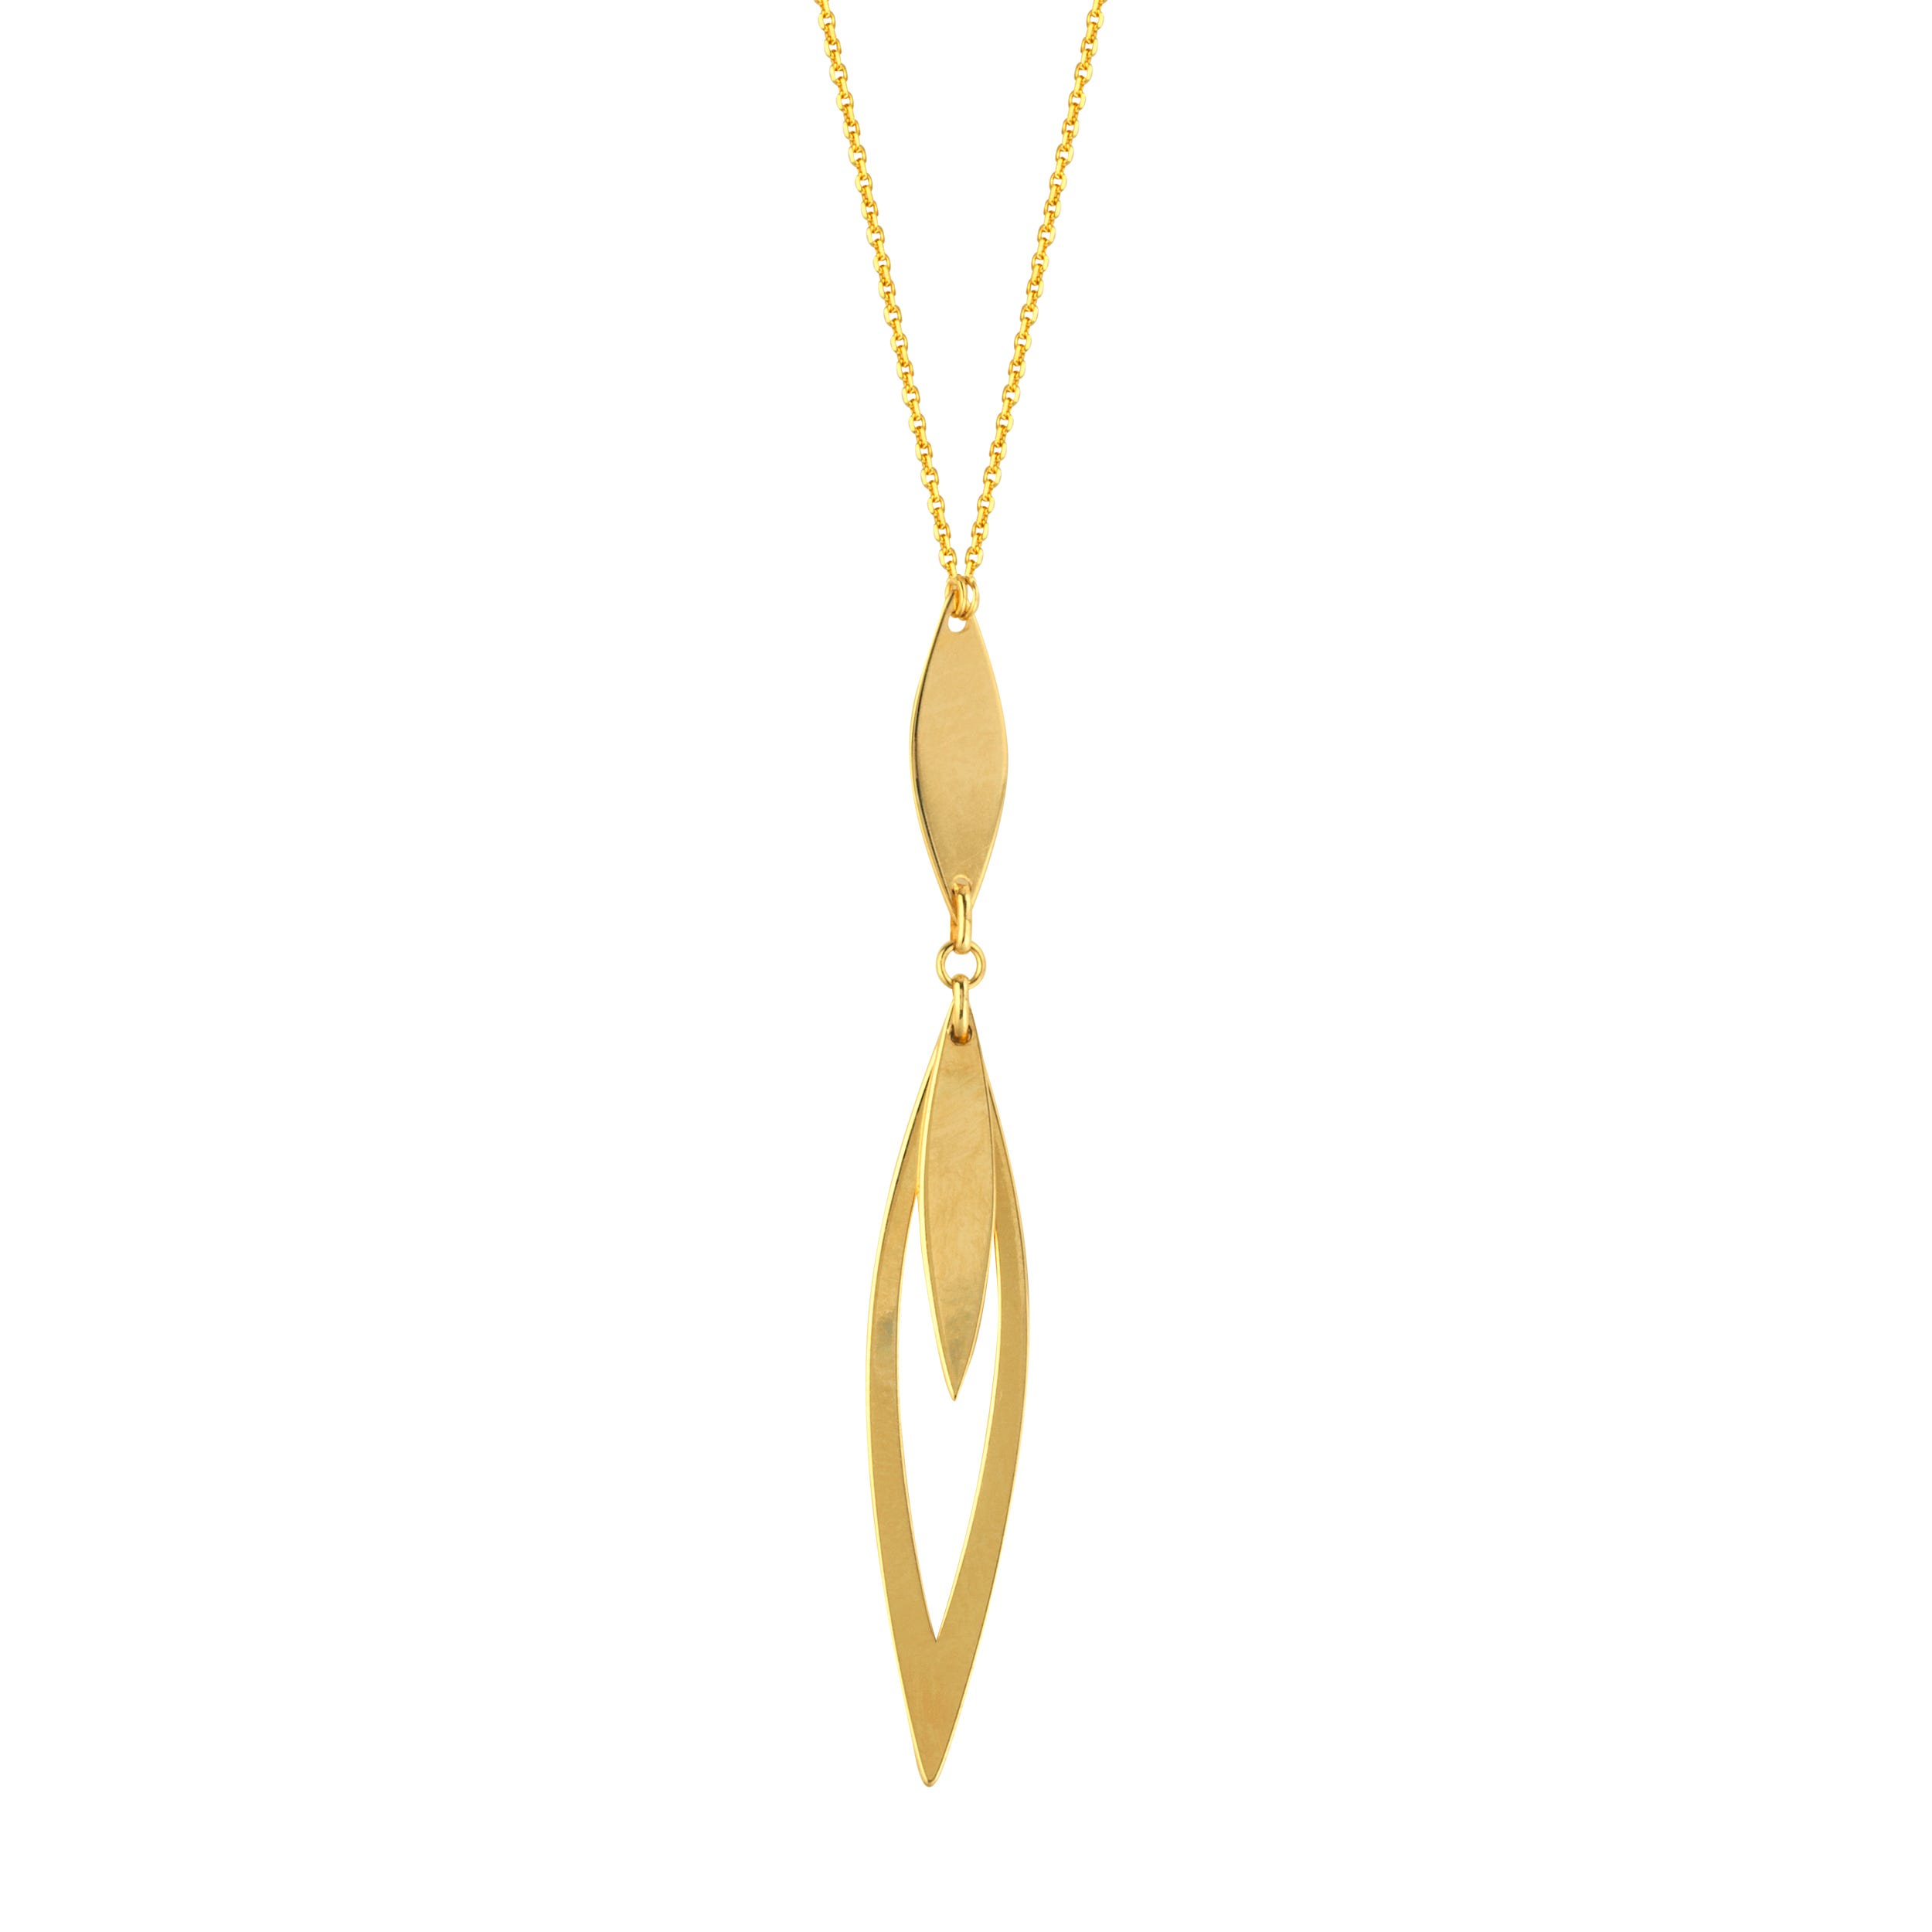 Triple Marquise Plate Fashion Lariat Necklace in 14k Yellow Gold